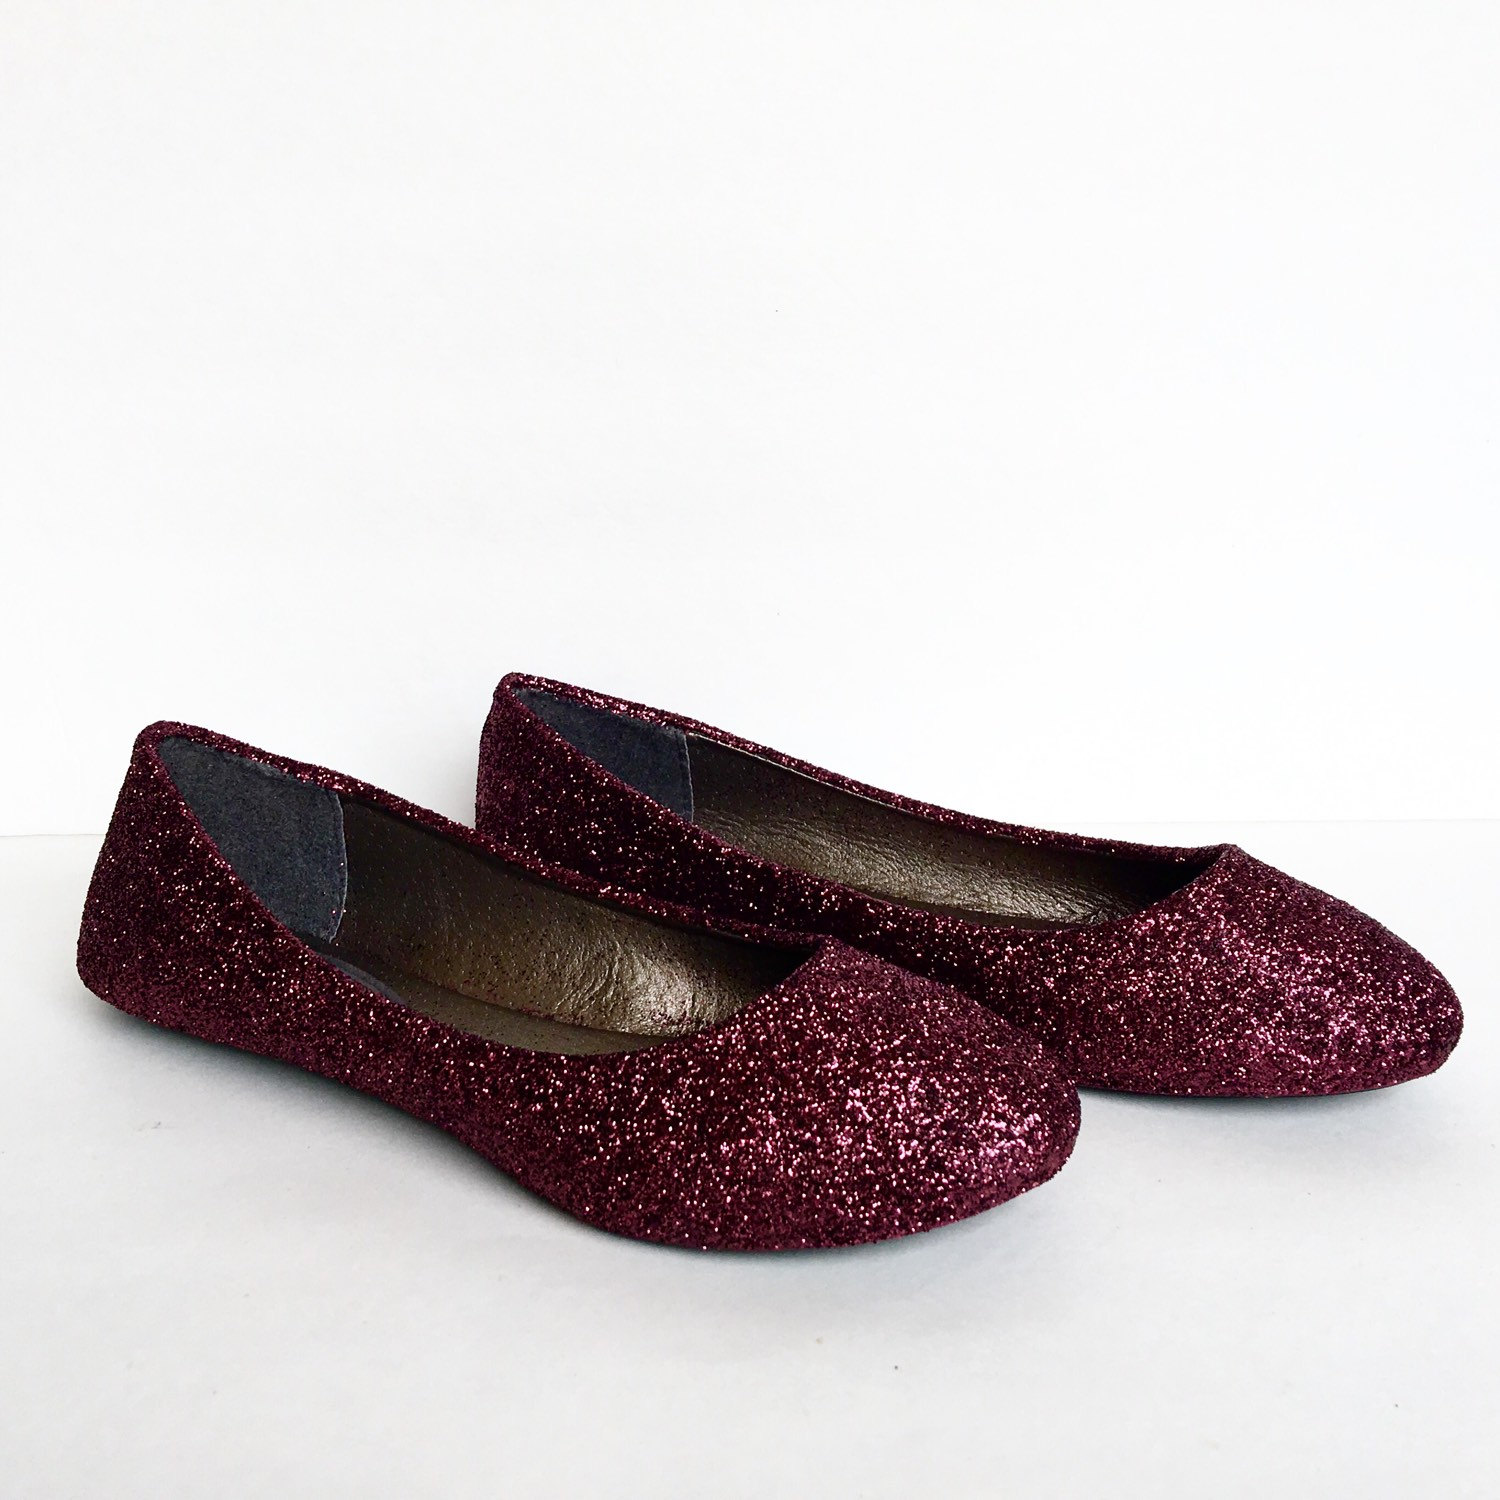 Burgundy Flats - Dark Red Glitter Shoes - Maroon Ballet Flats - Sparkly  Wedding Shoes - Red Prom Shoes - Glitzy Flats - Wine Red Slip Ons on  Storenvy 0ff8ef1068